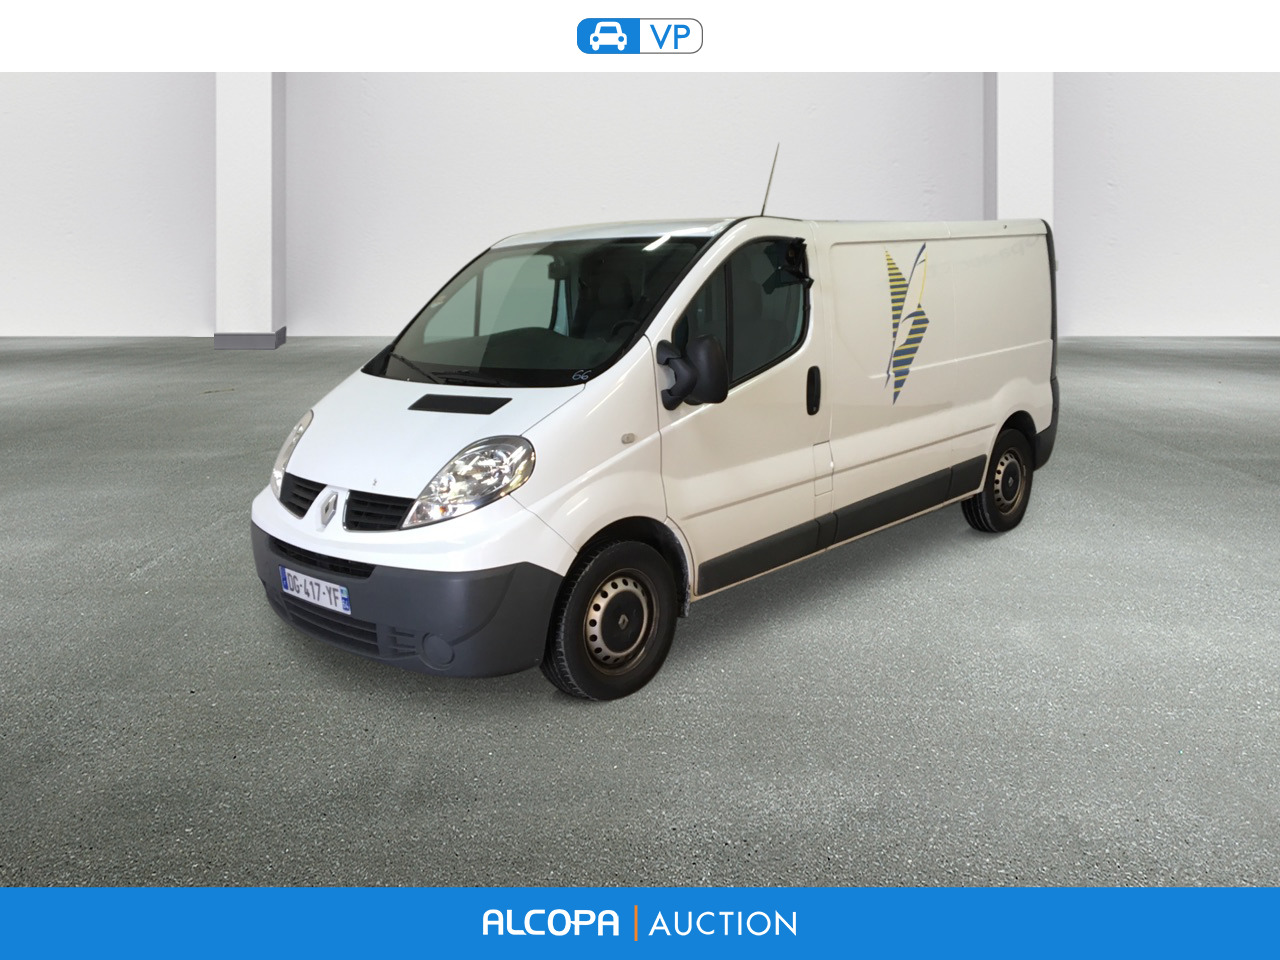 renault trafic trafic fg l2h1 1200kg dci 90 grand confort alcopa auction. Black Bedroom Furniture Sets. Home Design Ideas